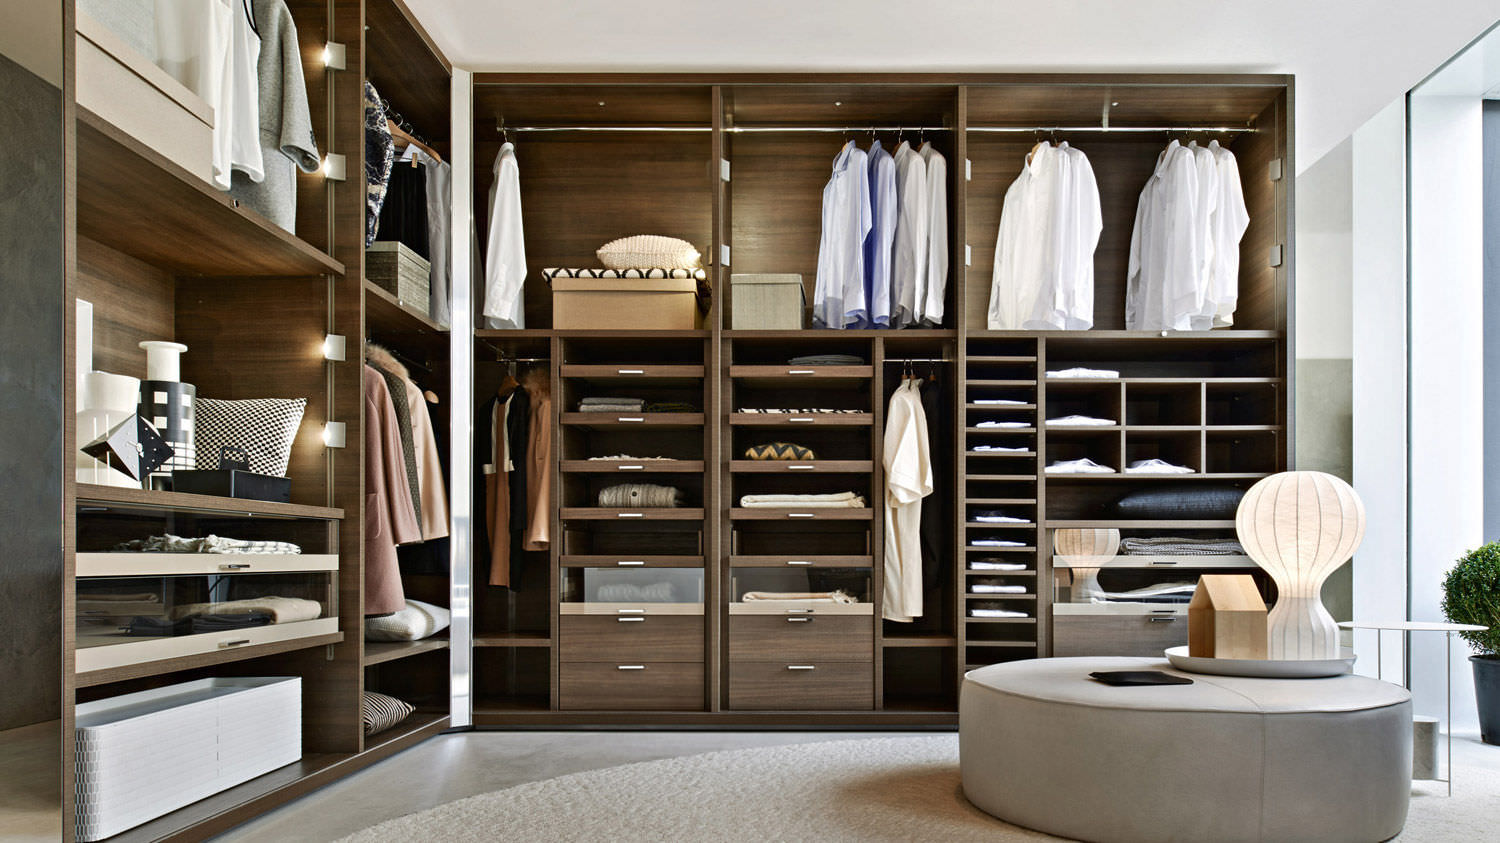 Walk in wardrobes wow interior design for Walk in wardrobe design